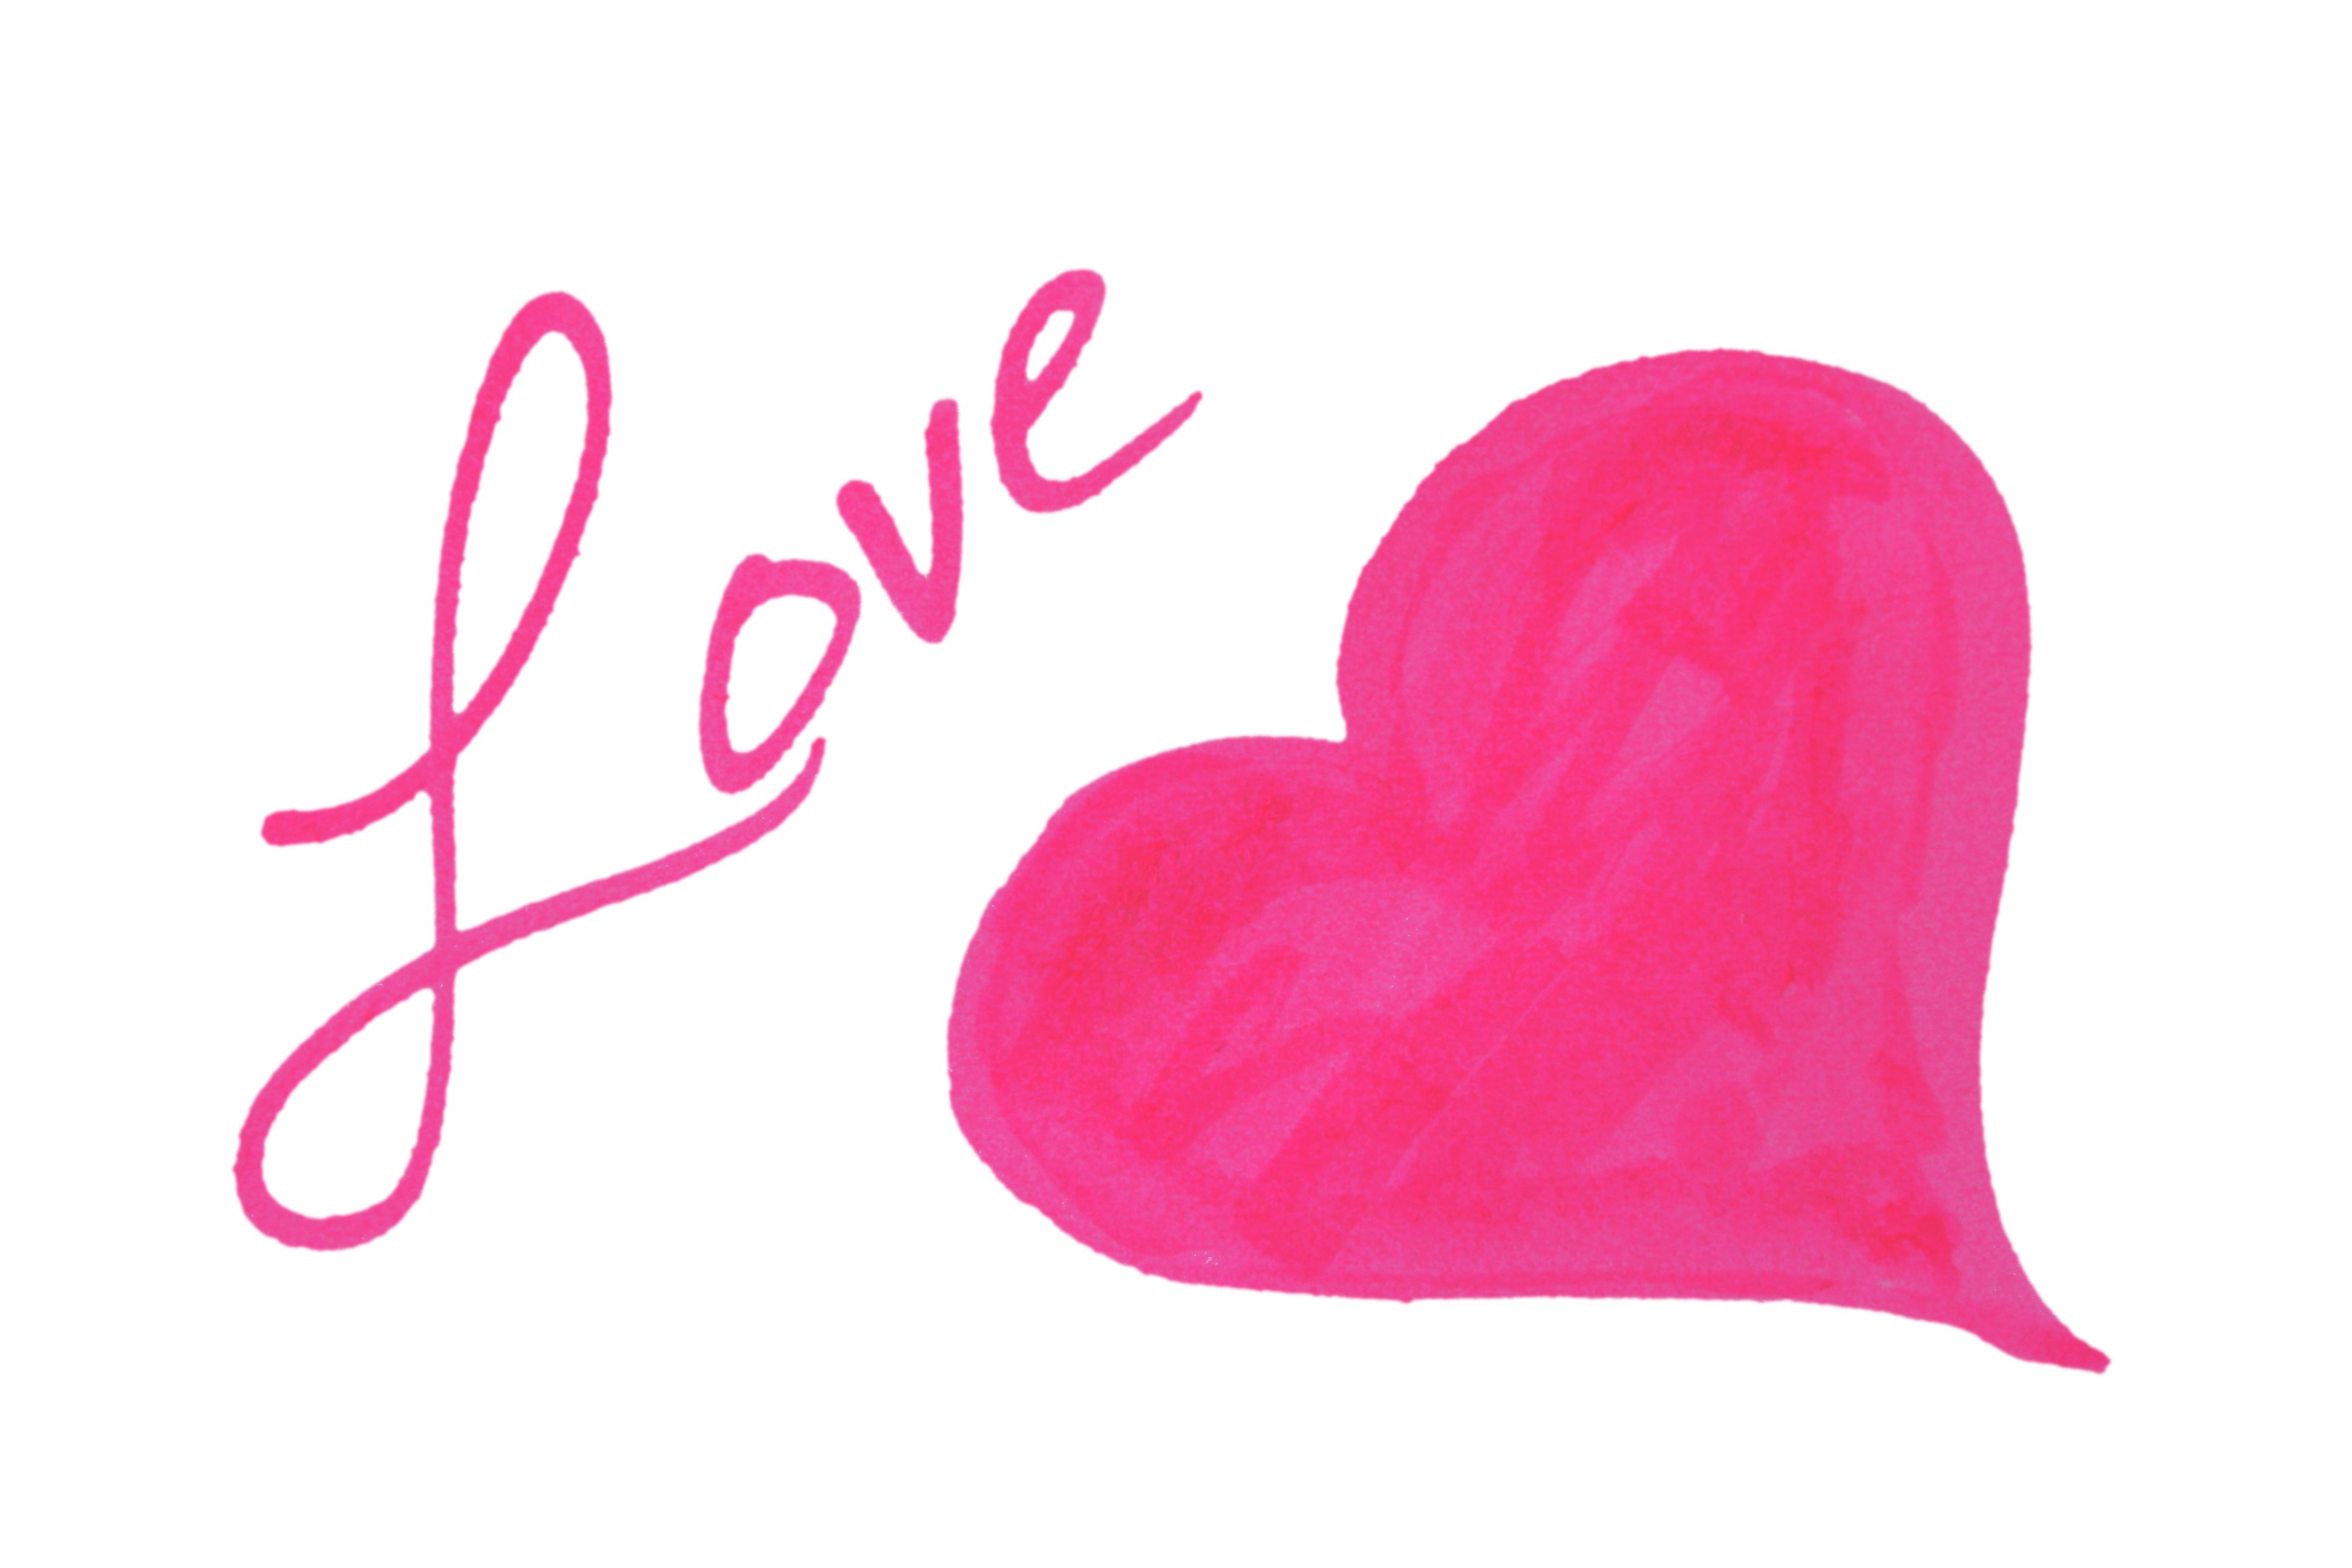 God love clipart free images 5